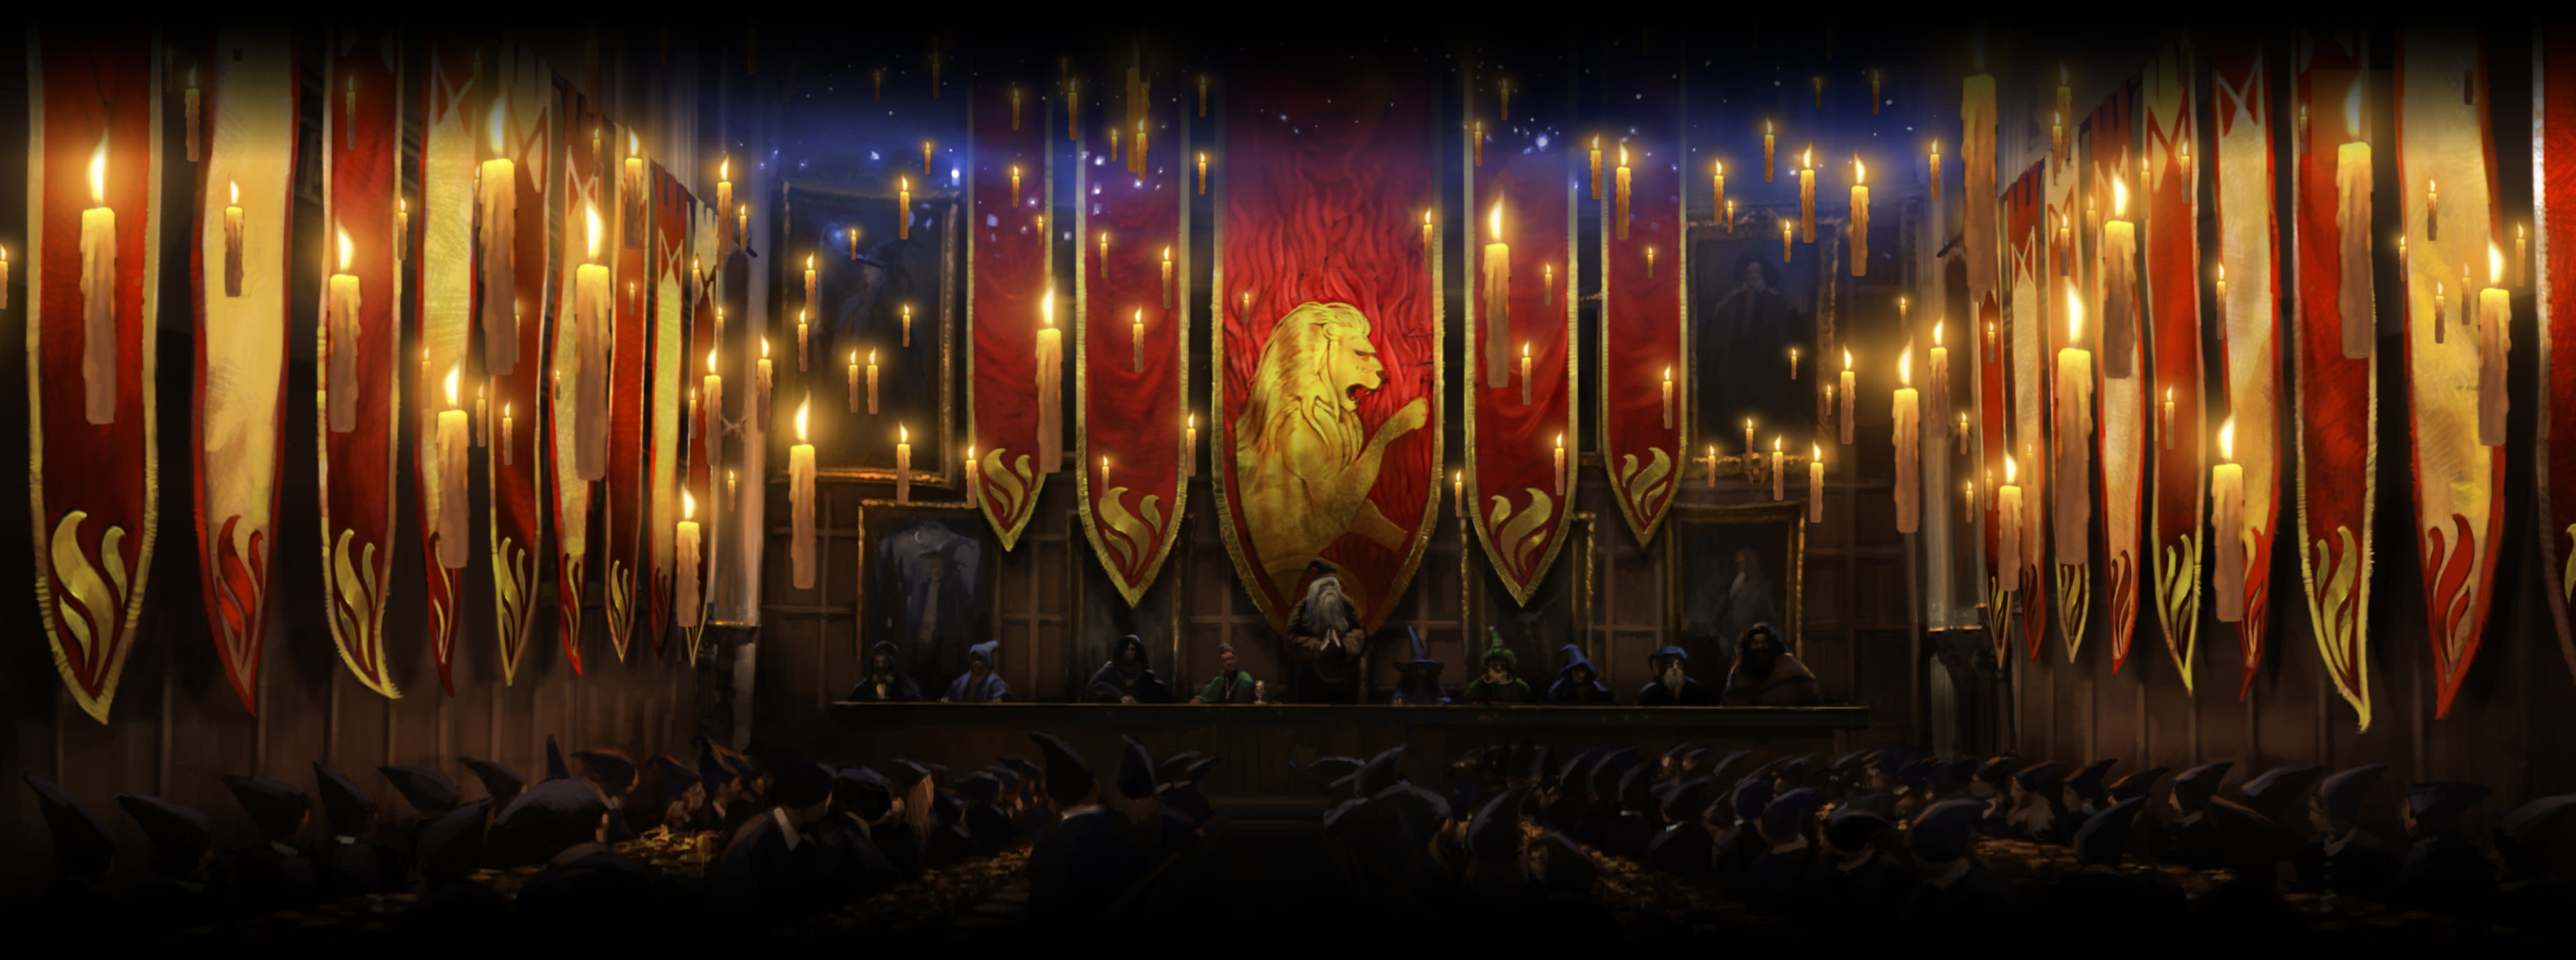 GreatHall PM B1C17M3 gryffindorWinningHouseCup Moment